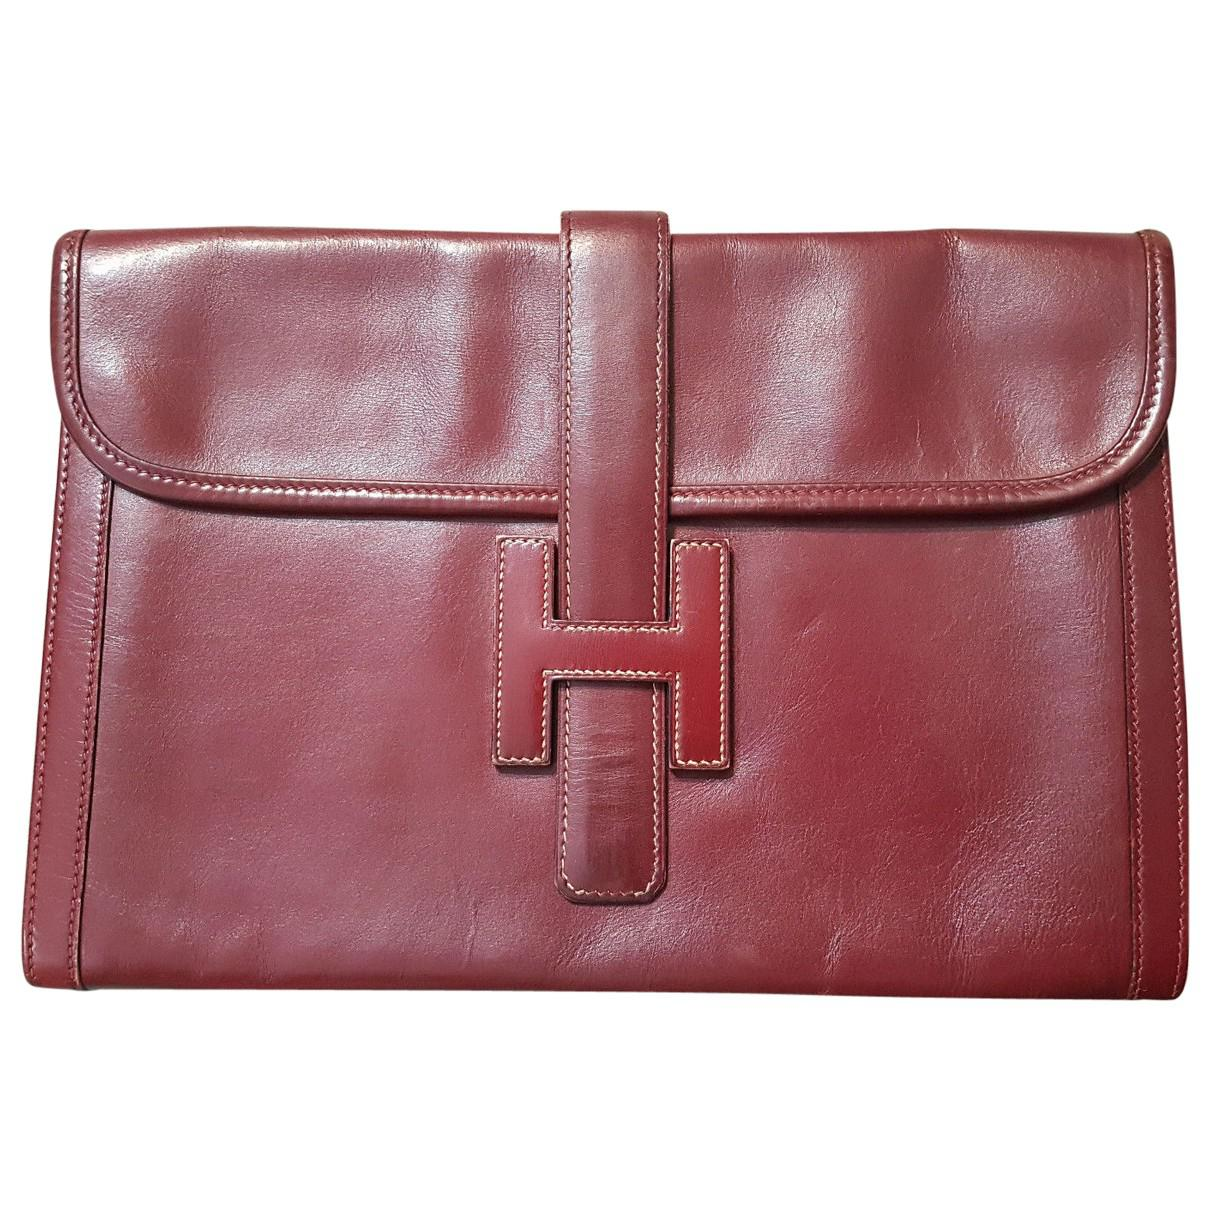 Hermès Pre-owned - Leather clutch bag OkRKI6